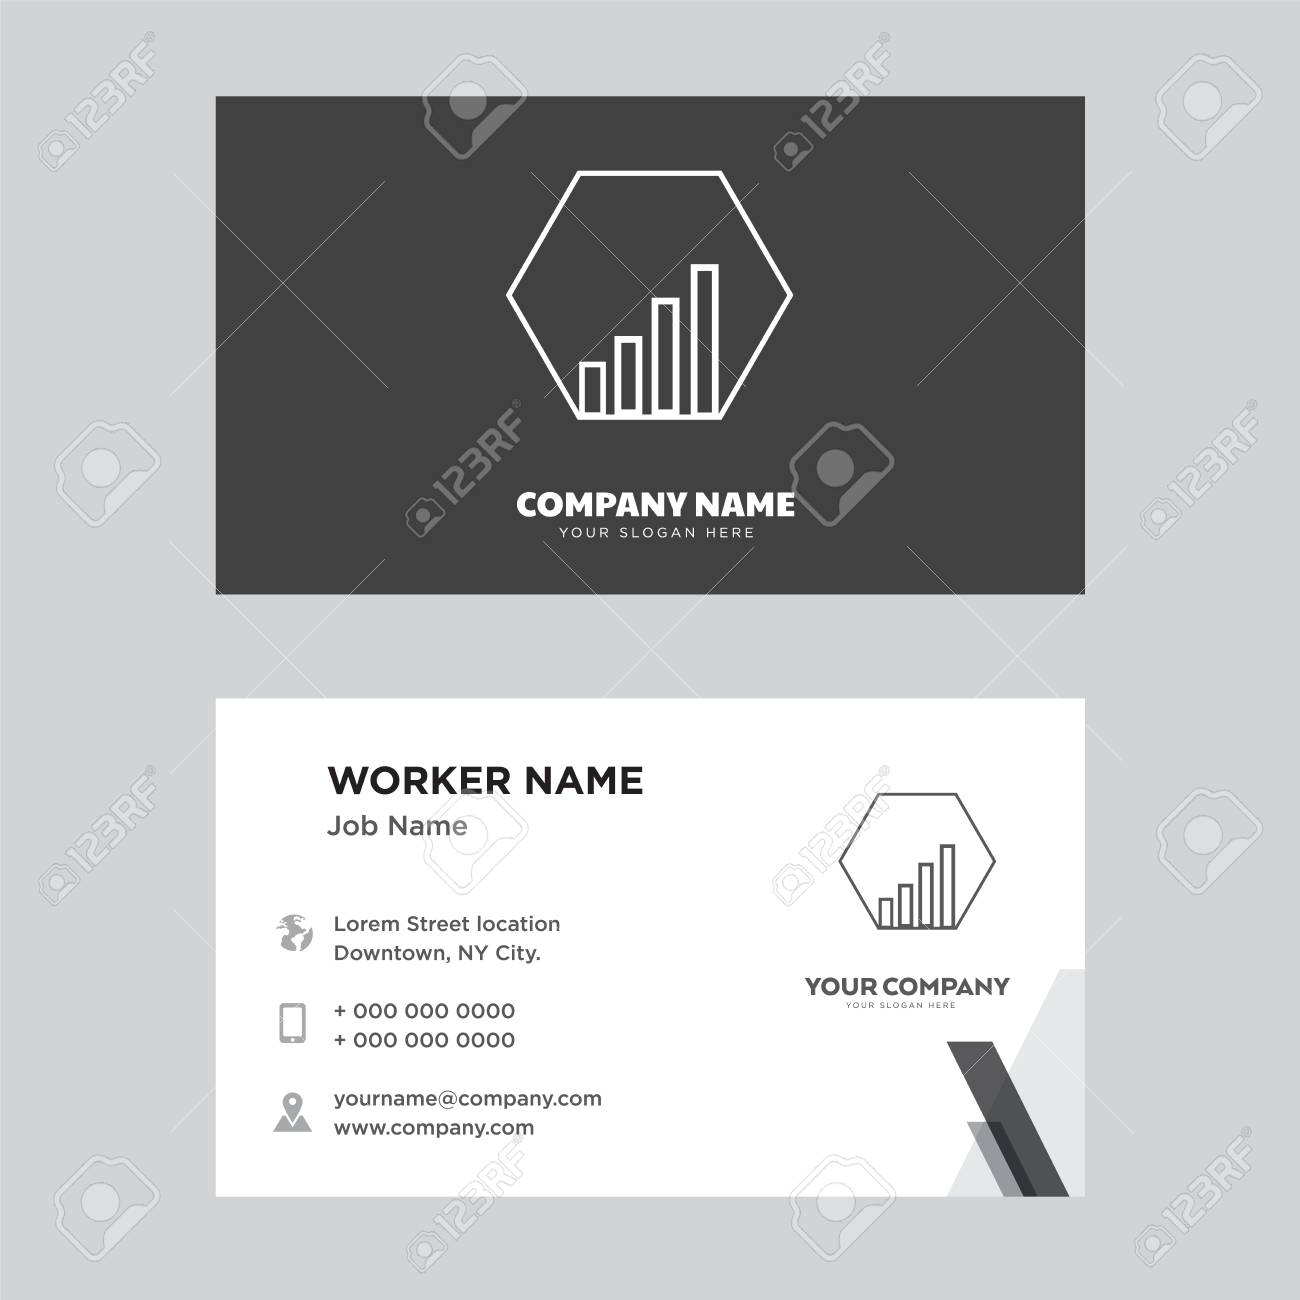 Diamond business card design template visiting for your company diamond business card design template visiting for your company modern creative and clean identity colourmoves